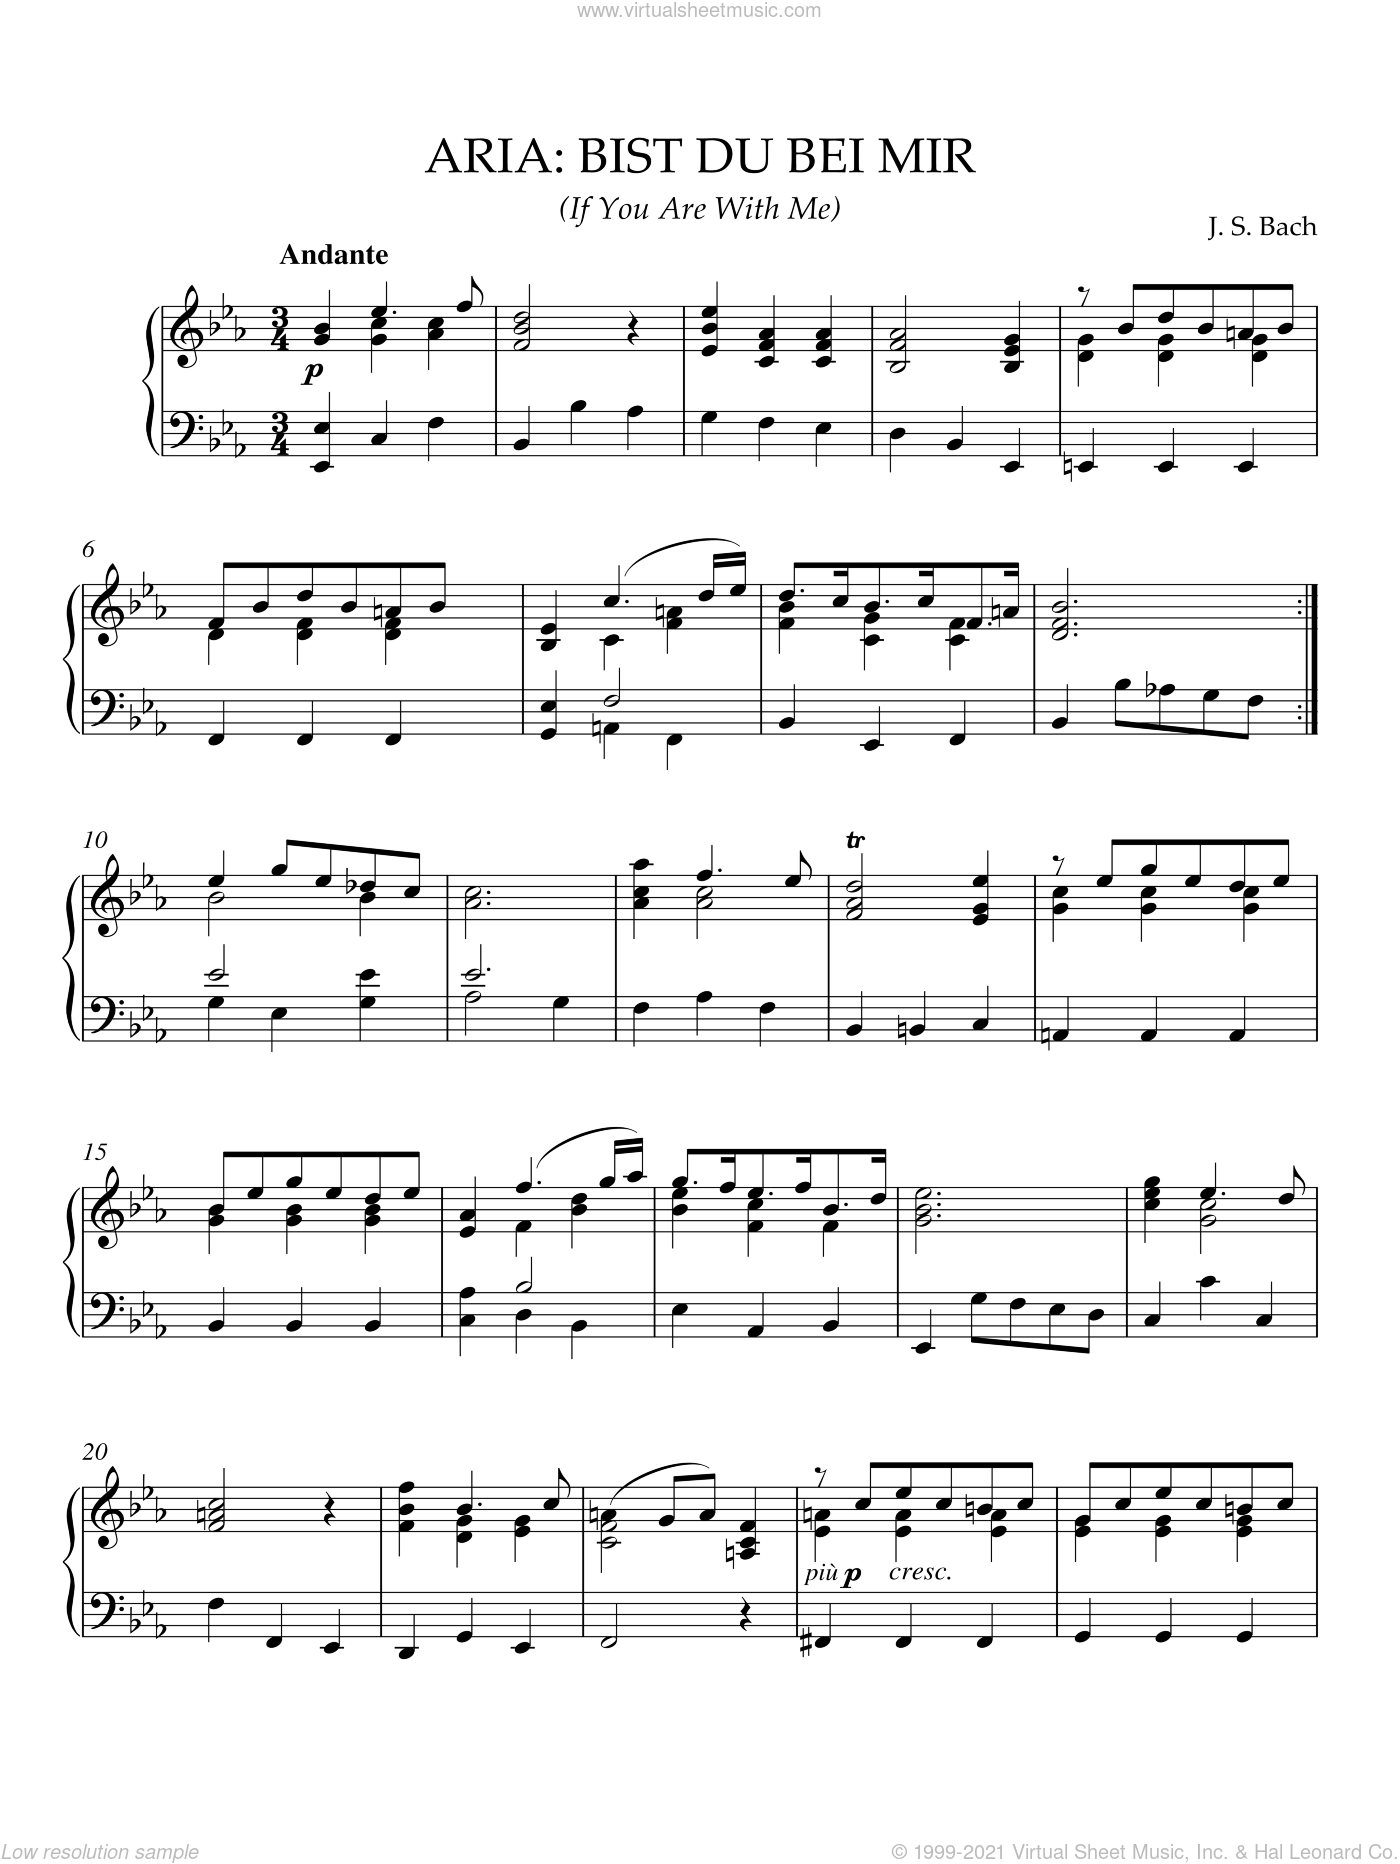 Bist Du Bei Mir (If You Are With Me) sheet music for piano solo by Johann Sebastian Bach